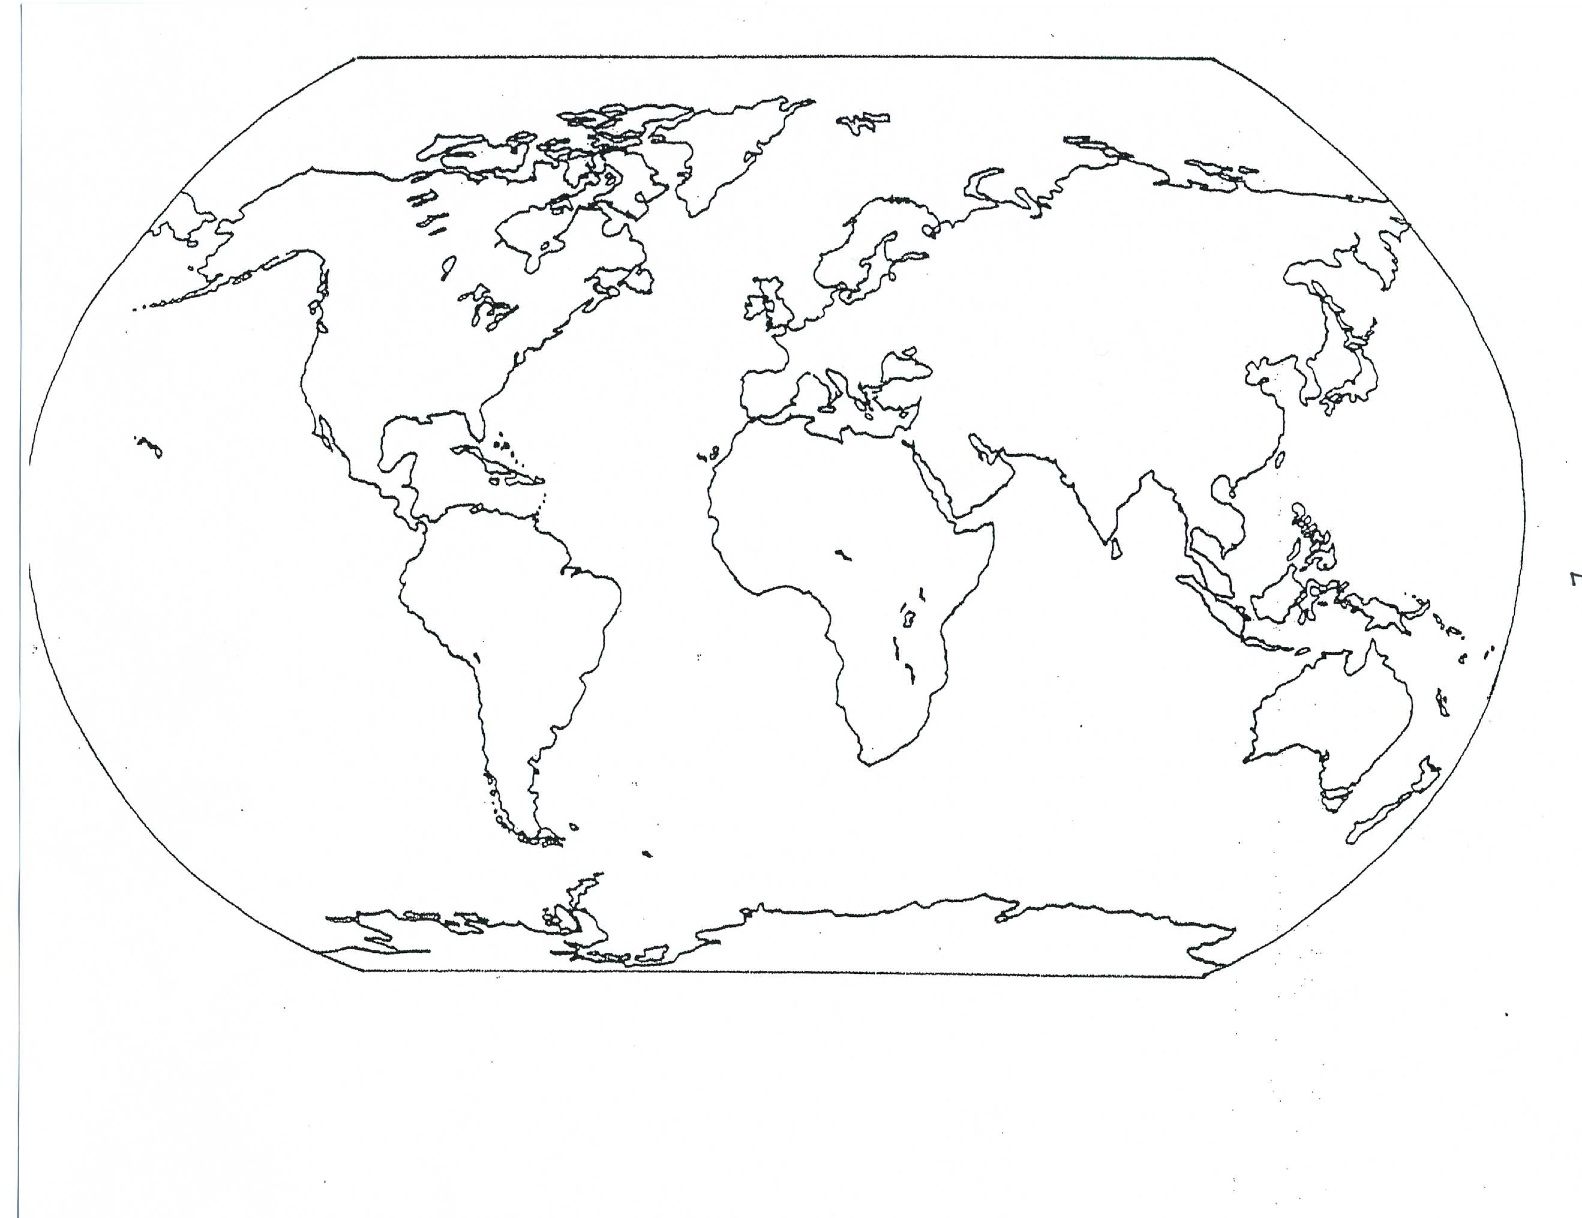 Free Philippines Cliparts, Download Free Clip Art, Free ... |World Map Outline Continents